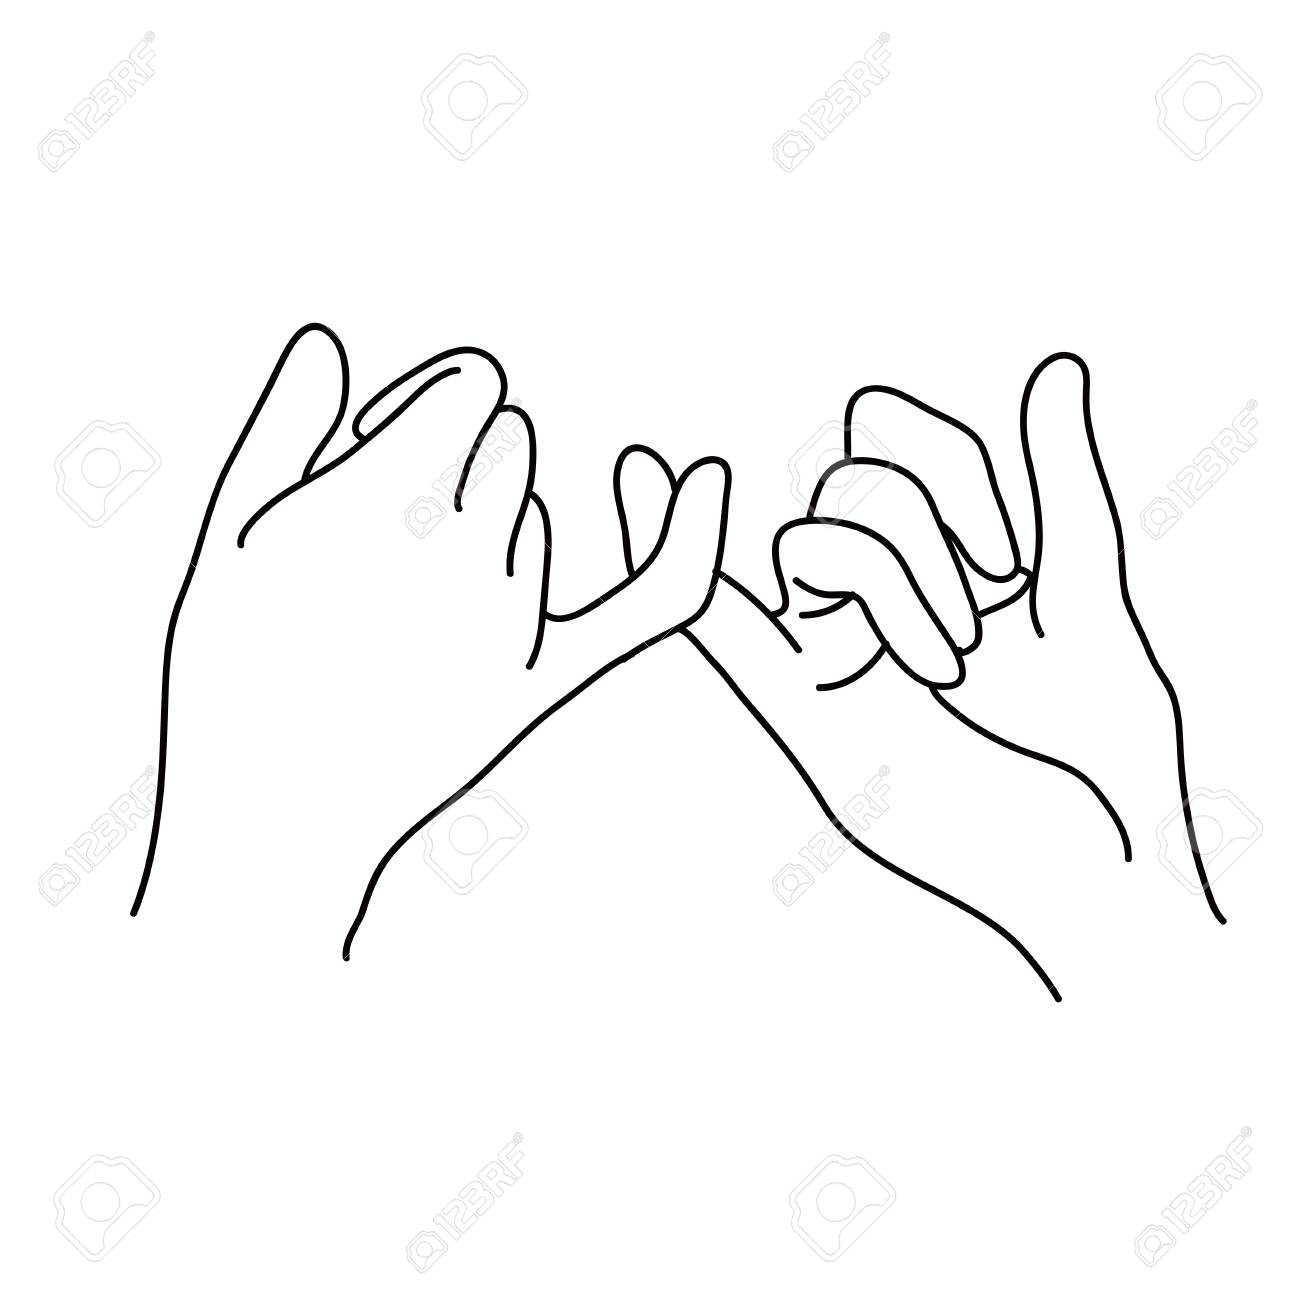 Pinky Promise Clipart & Free Pinky Promise Clipart.png.